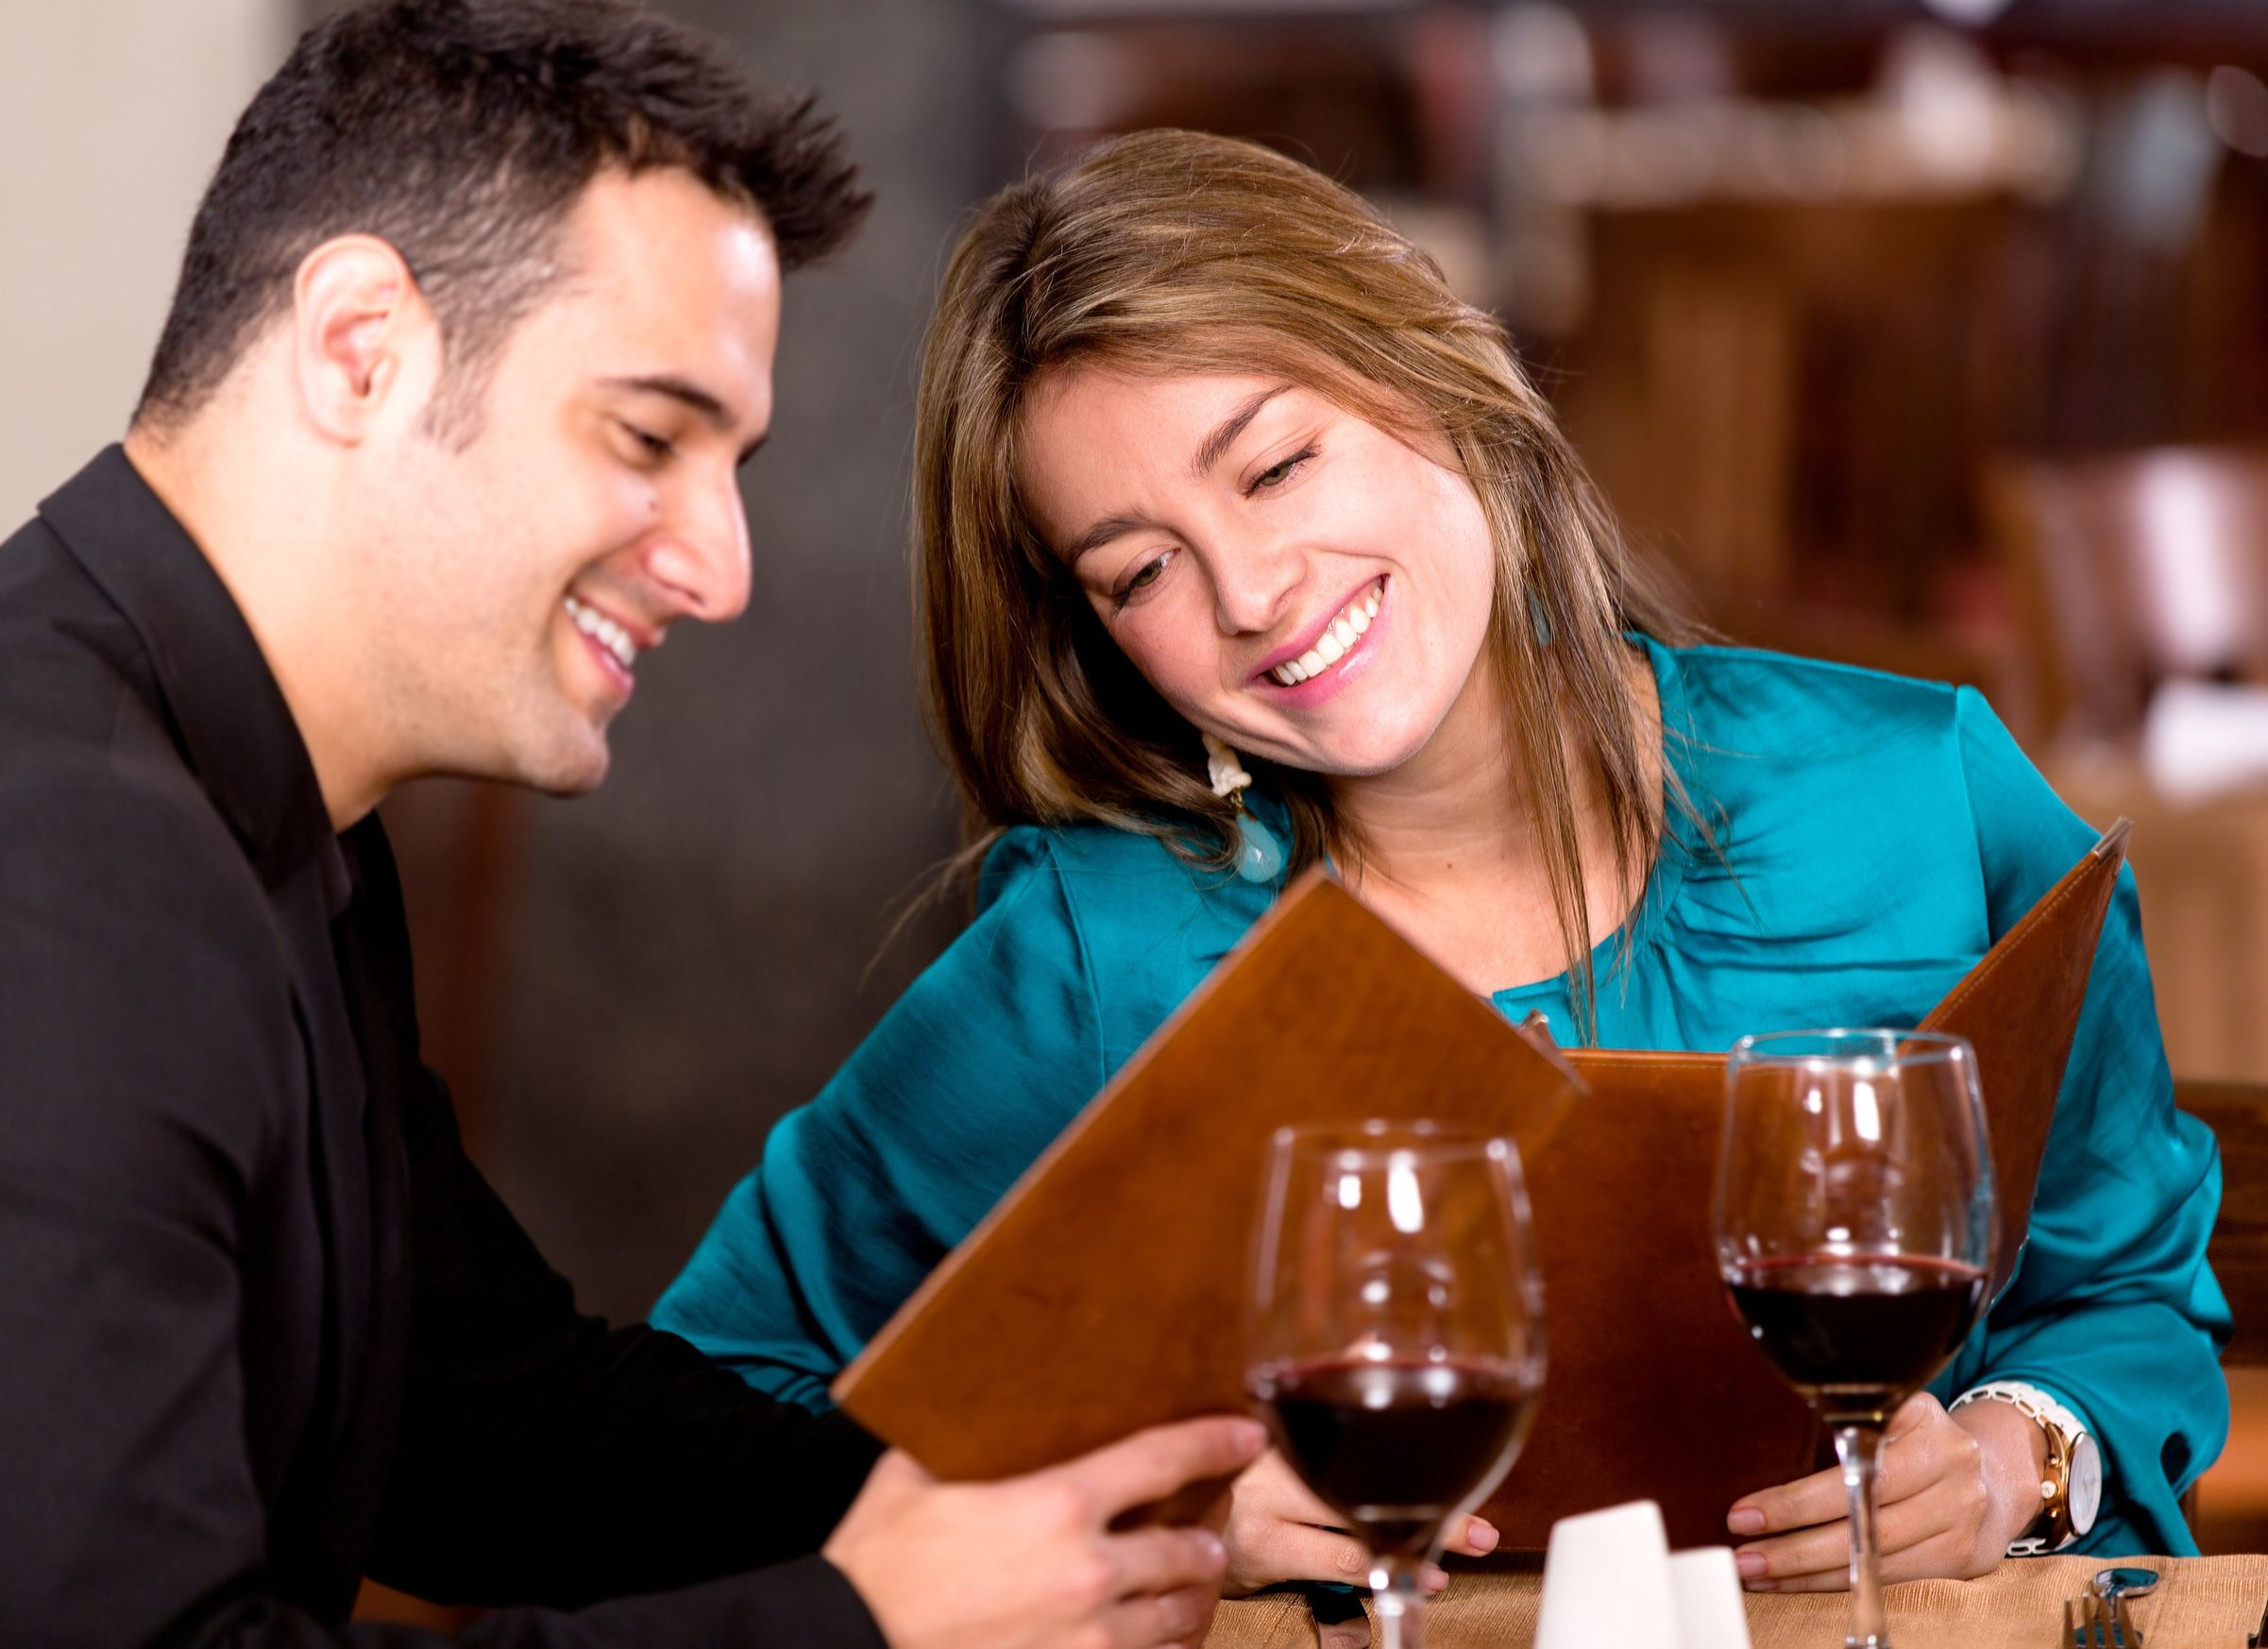 jersey city single personals Find meetups in jersey city, new jersey about singles over 40 and meet people in your local community who share your interests.